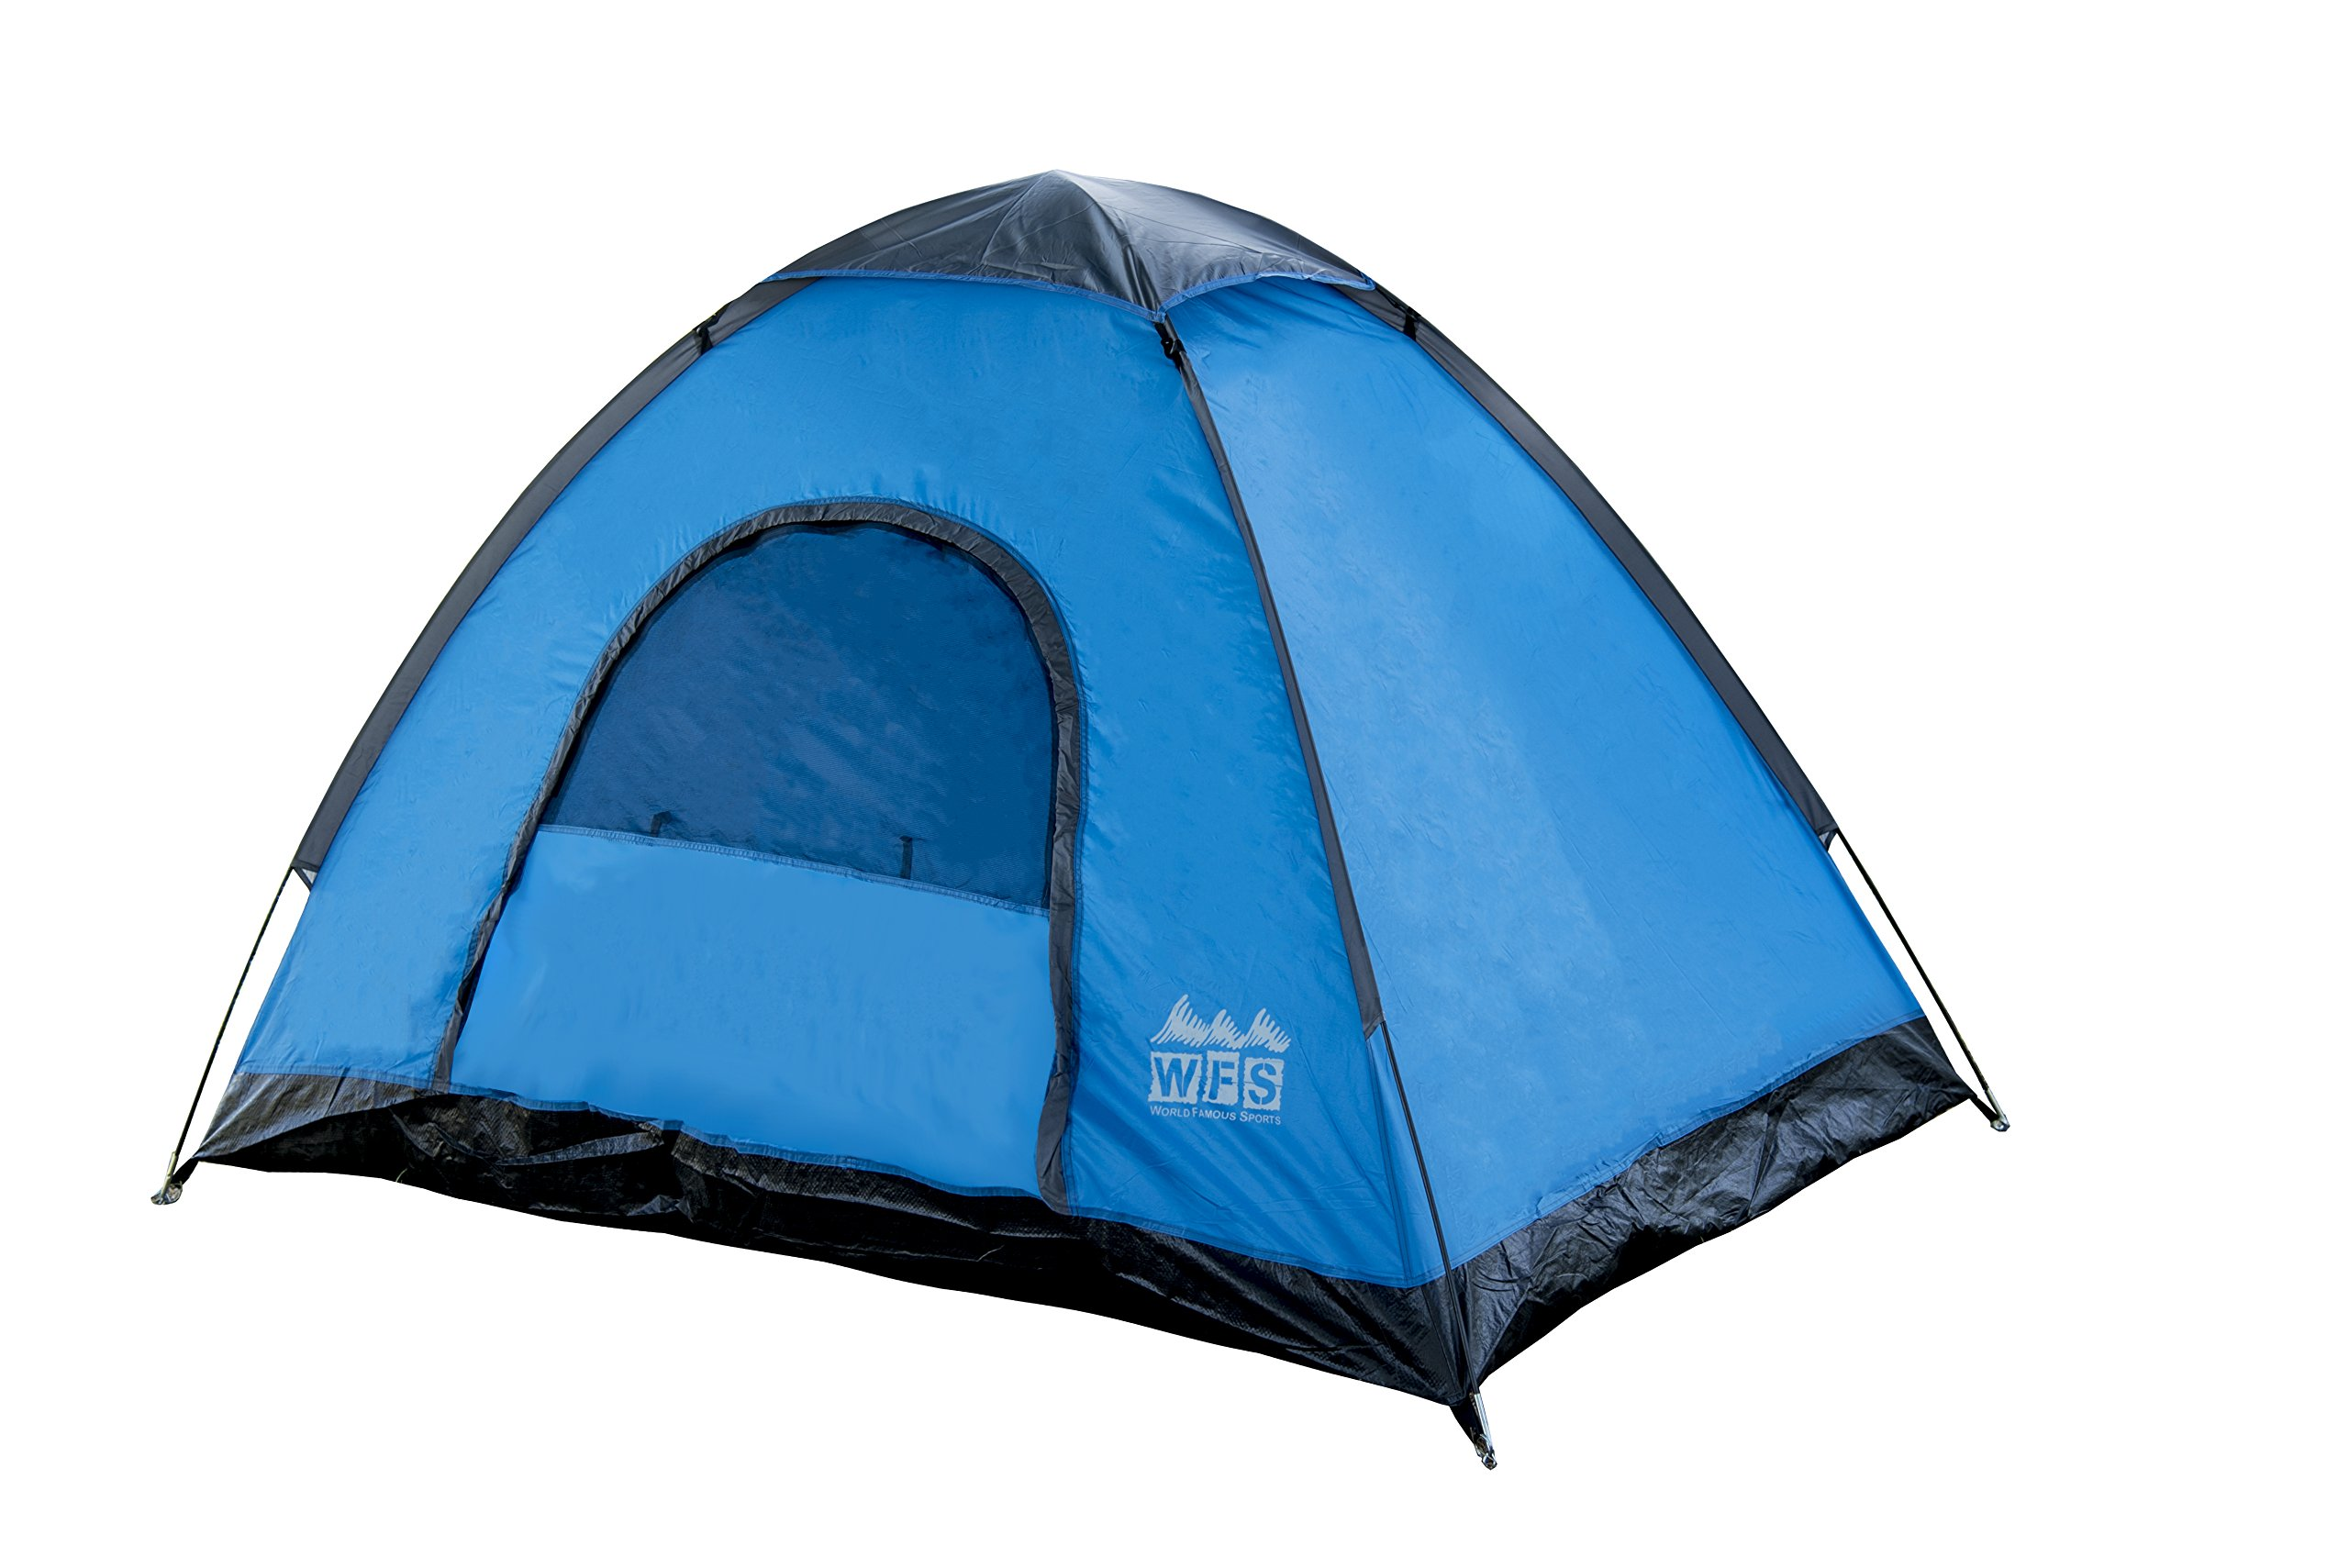 World Famous Sports 2-Person Camping Tent, Blue/Black